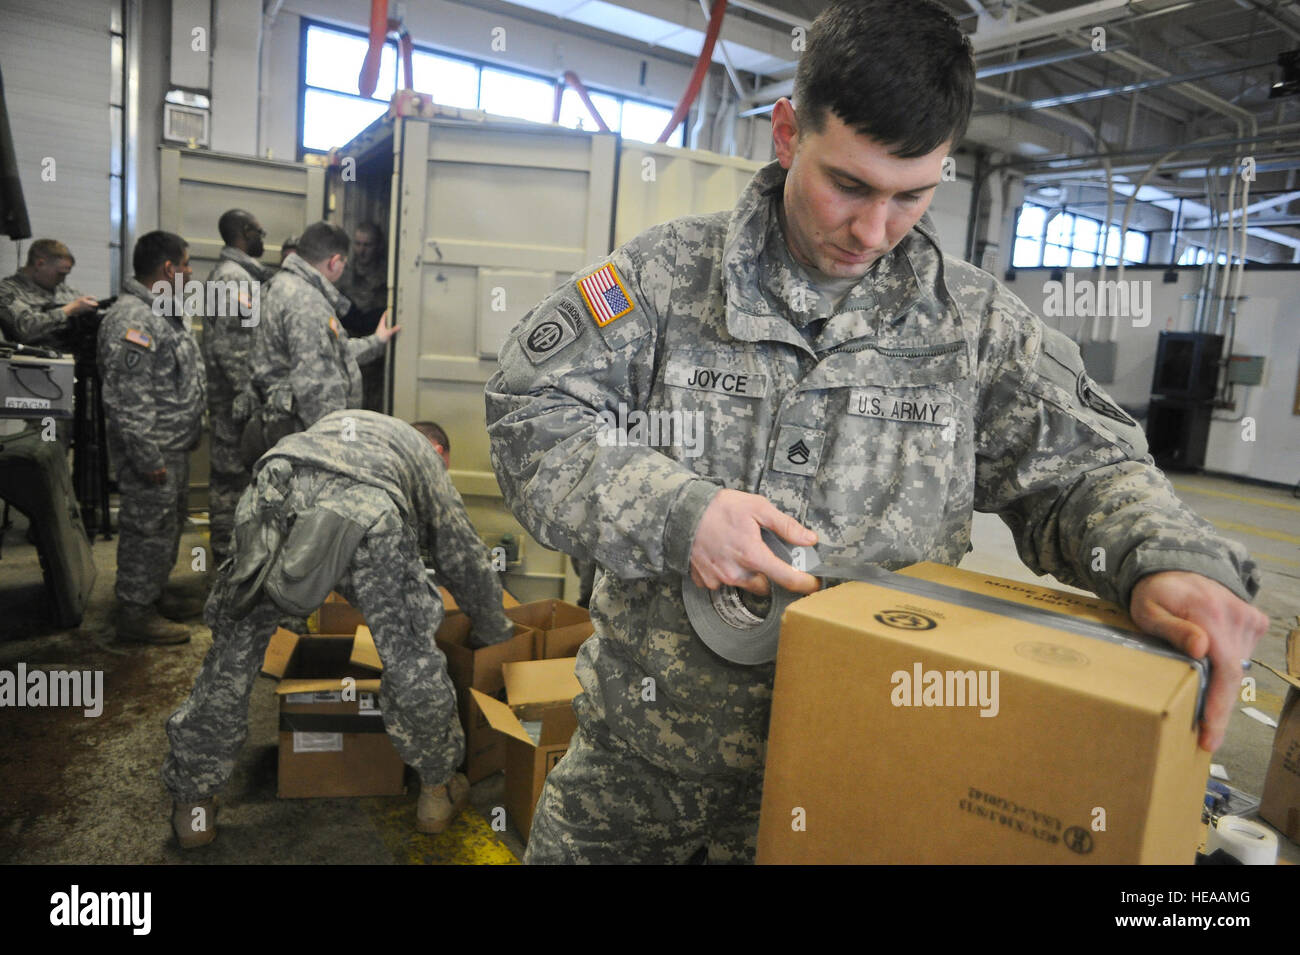 Army Staff Sgt. Barry Joyce, a native of Martinsville, Va., tapes a box to load batteries in as fellow soldiers Stock Photo